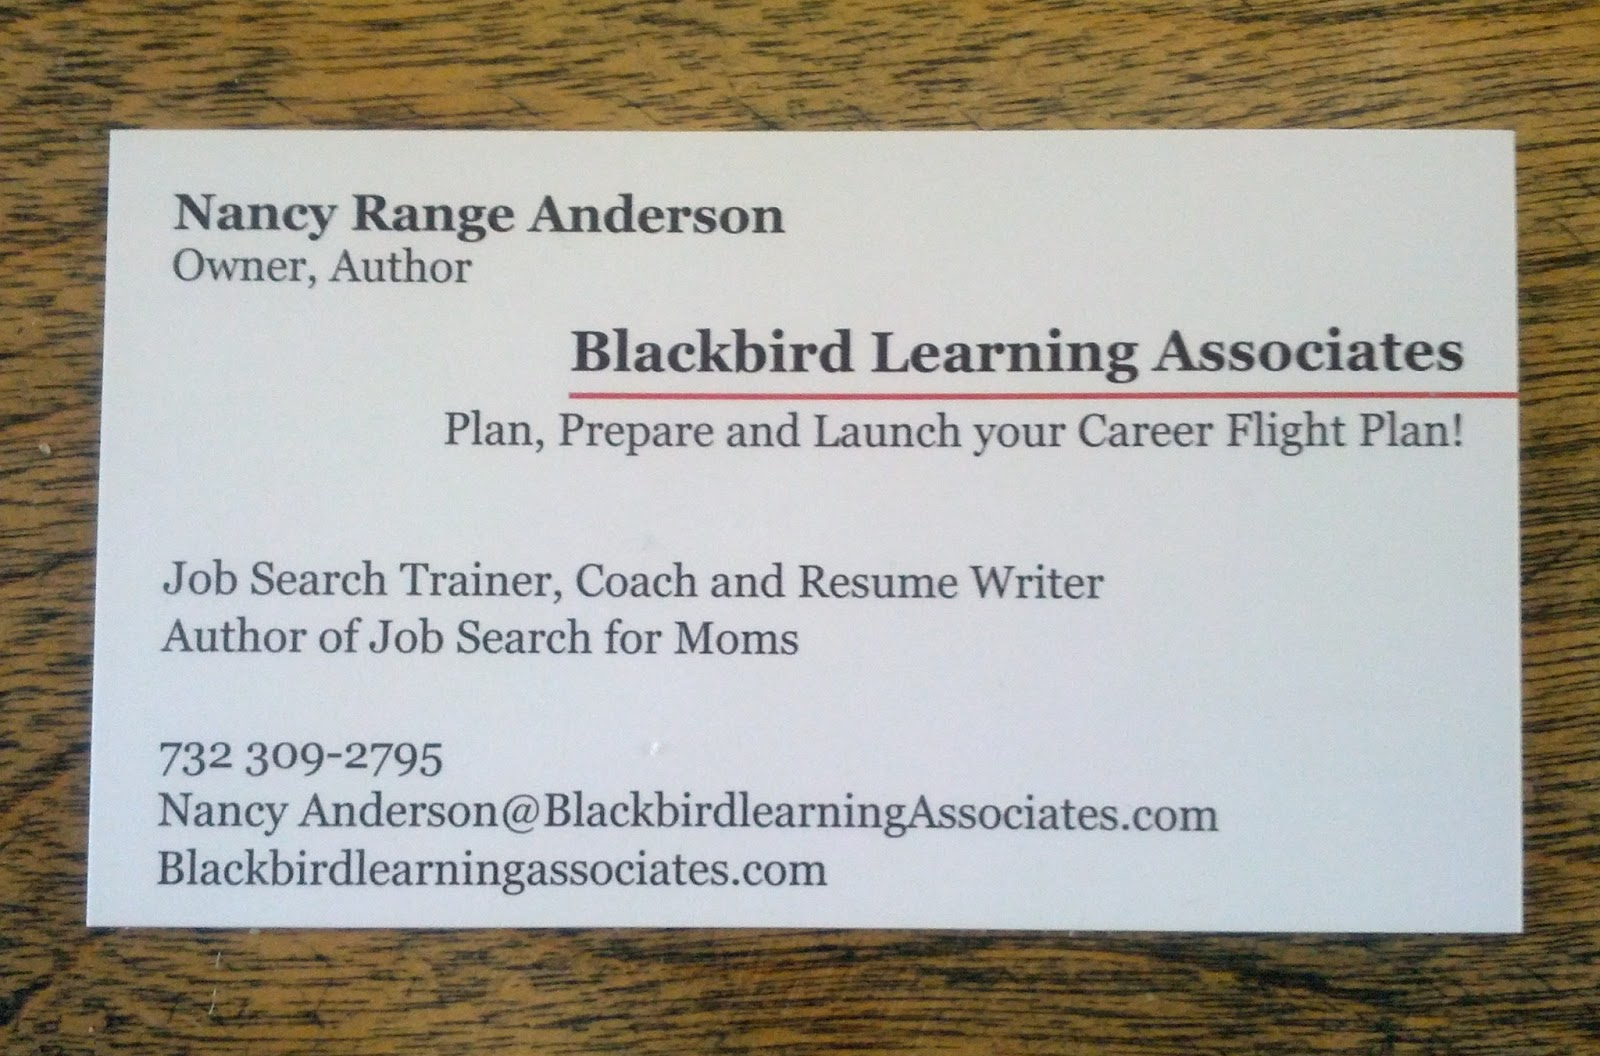 Every Job Seeker Needs Business Cards